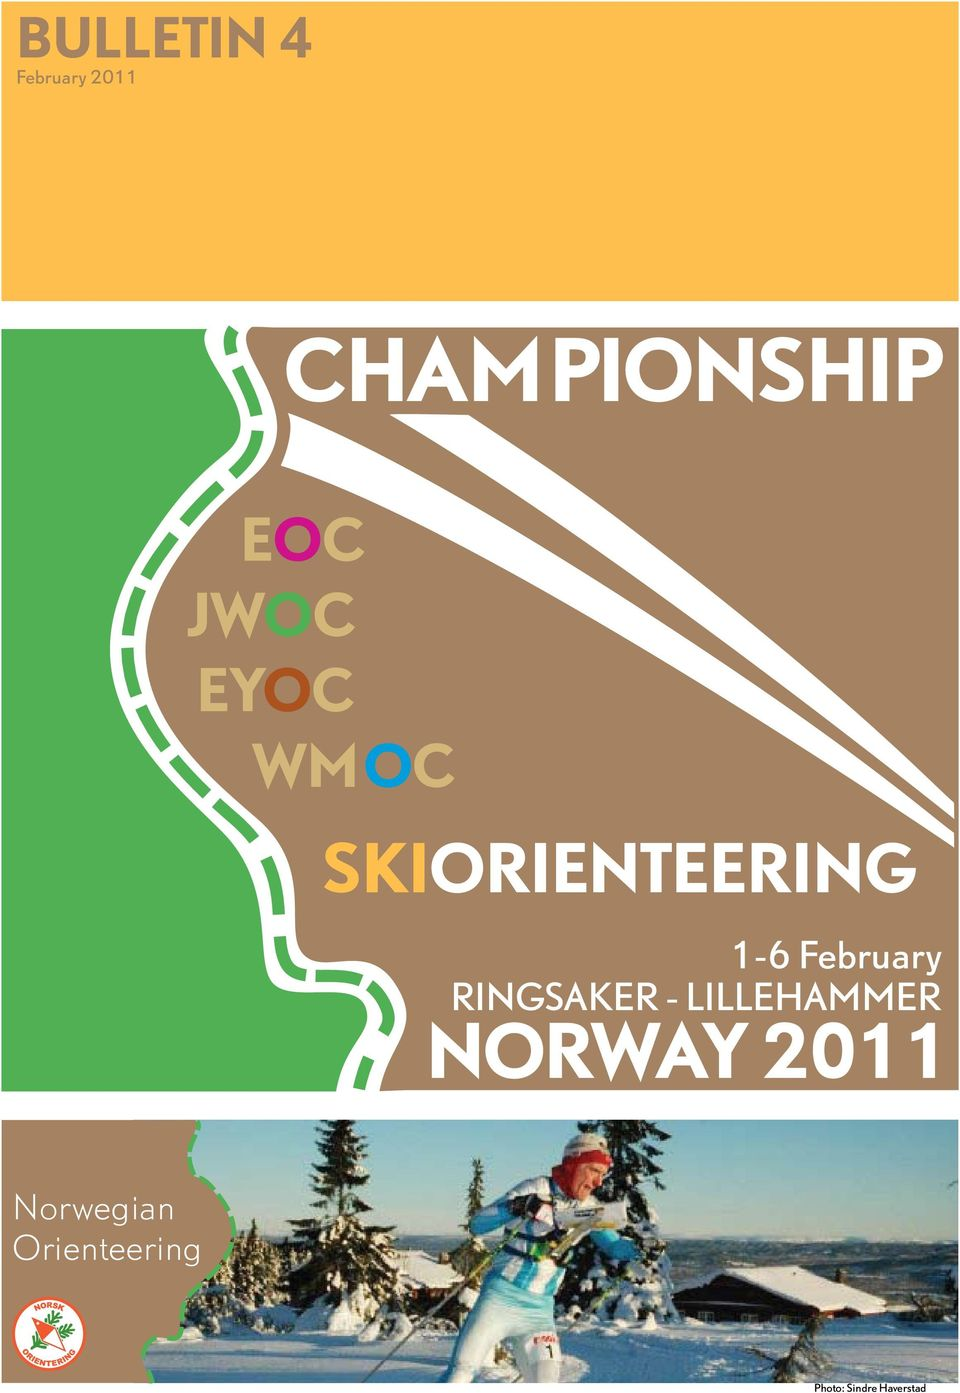 February RINGSAKER - LILLEHAMMER NORWAY